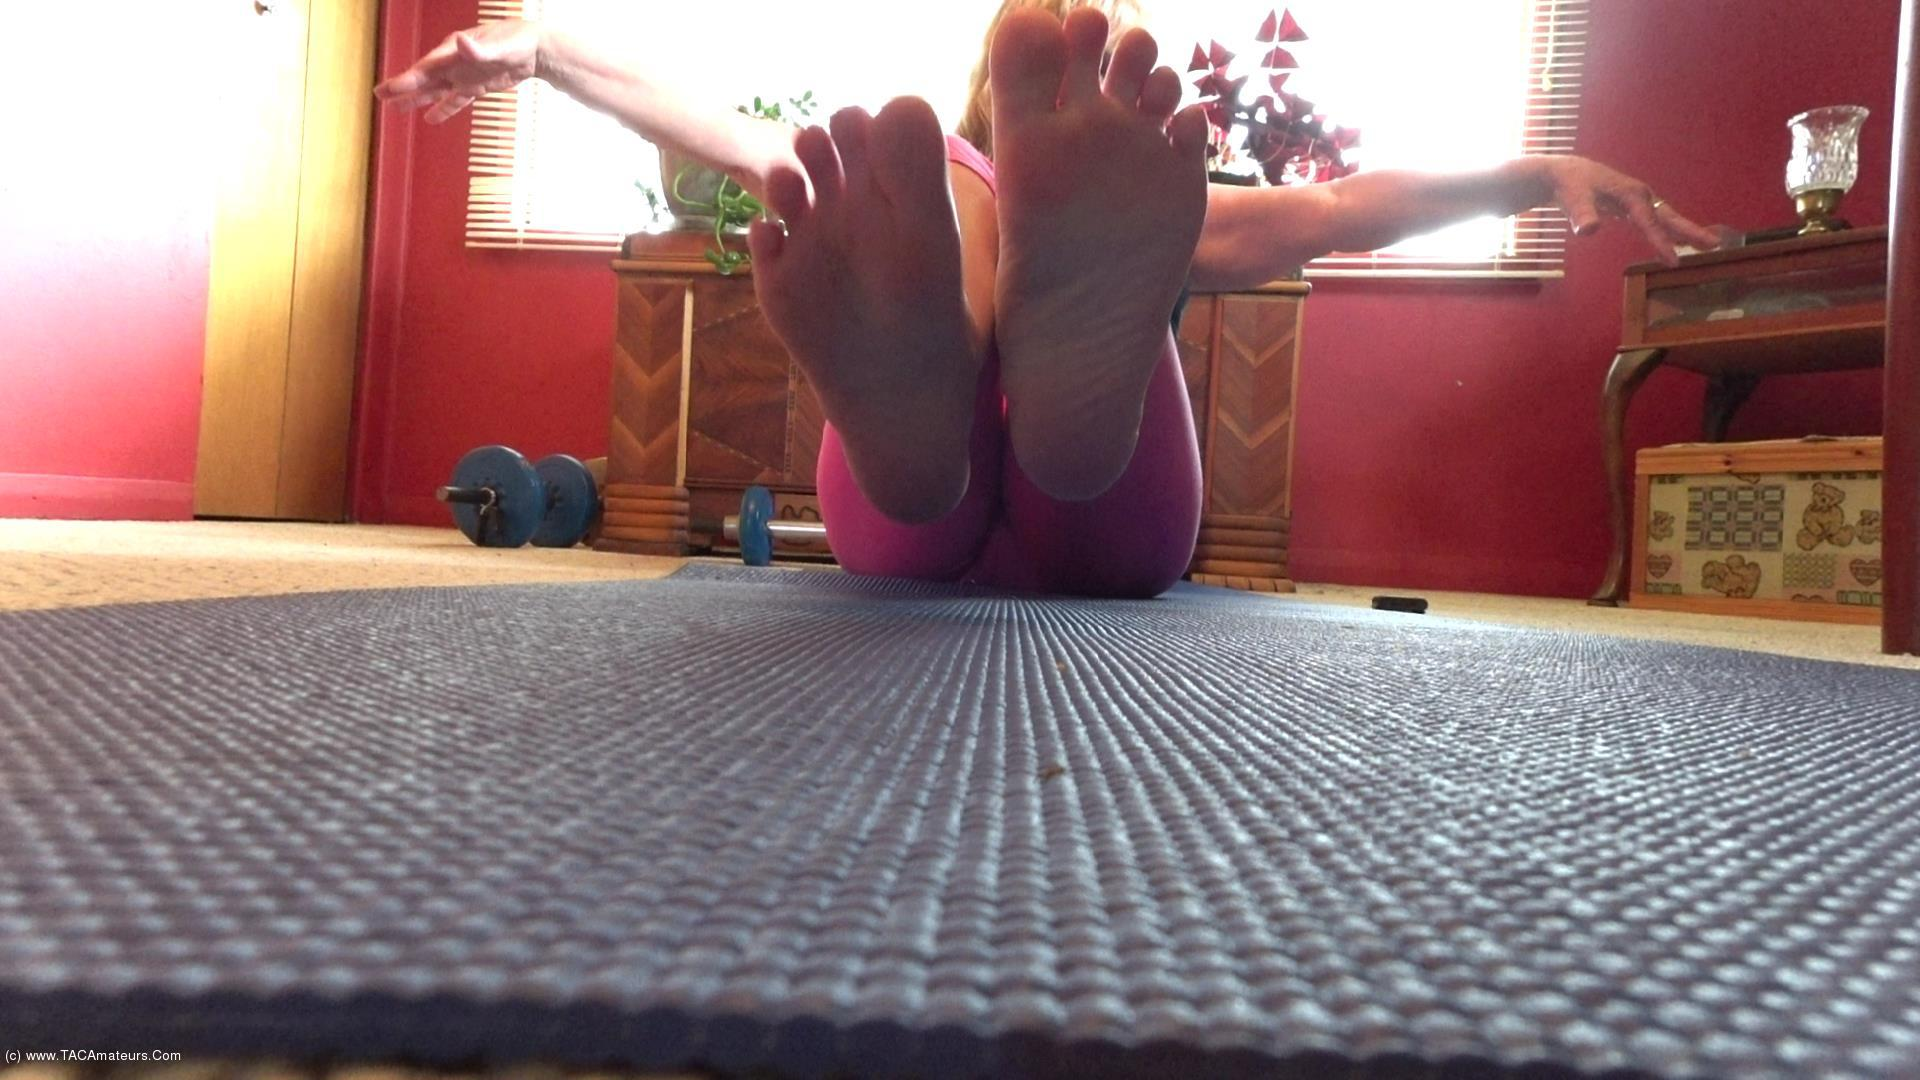 CougarBabeJolee - Barefoot Yoga Exquisite Feet To Worship scene 3